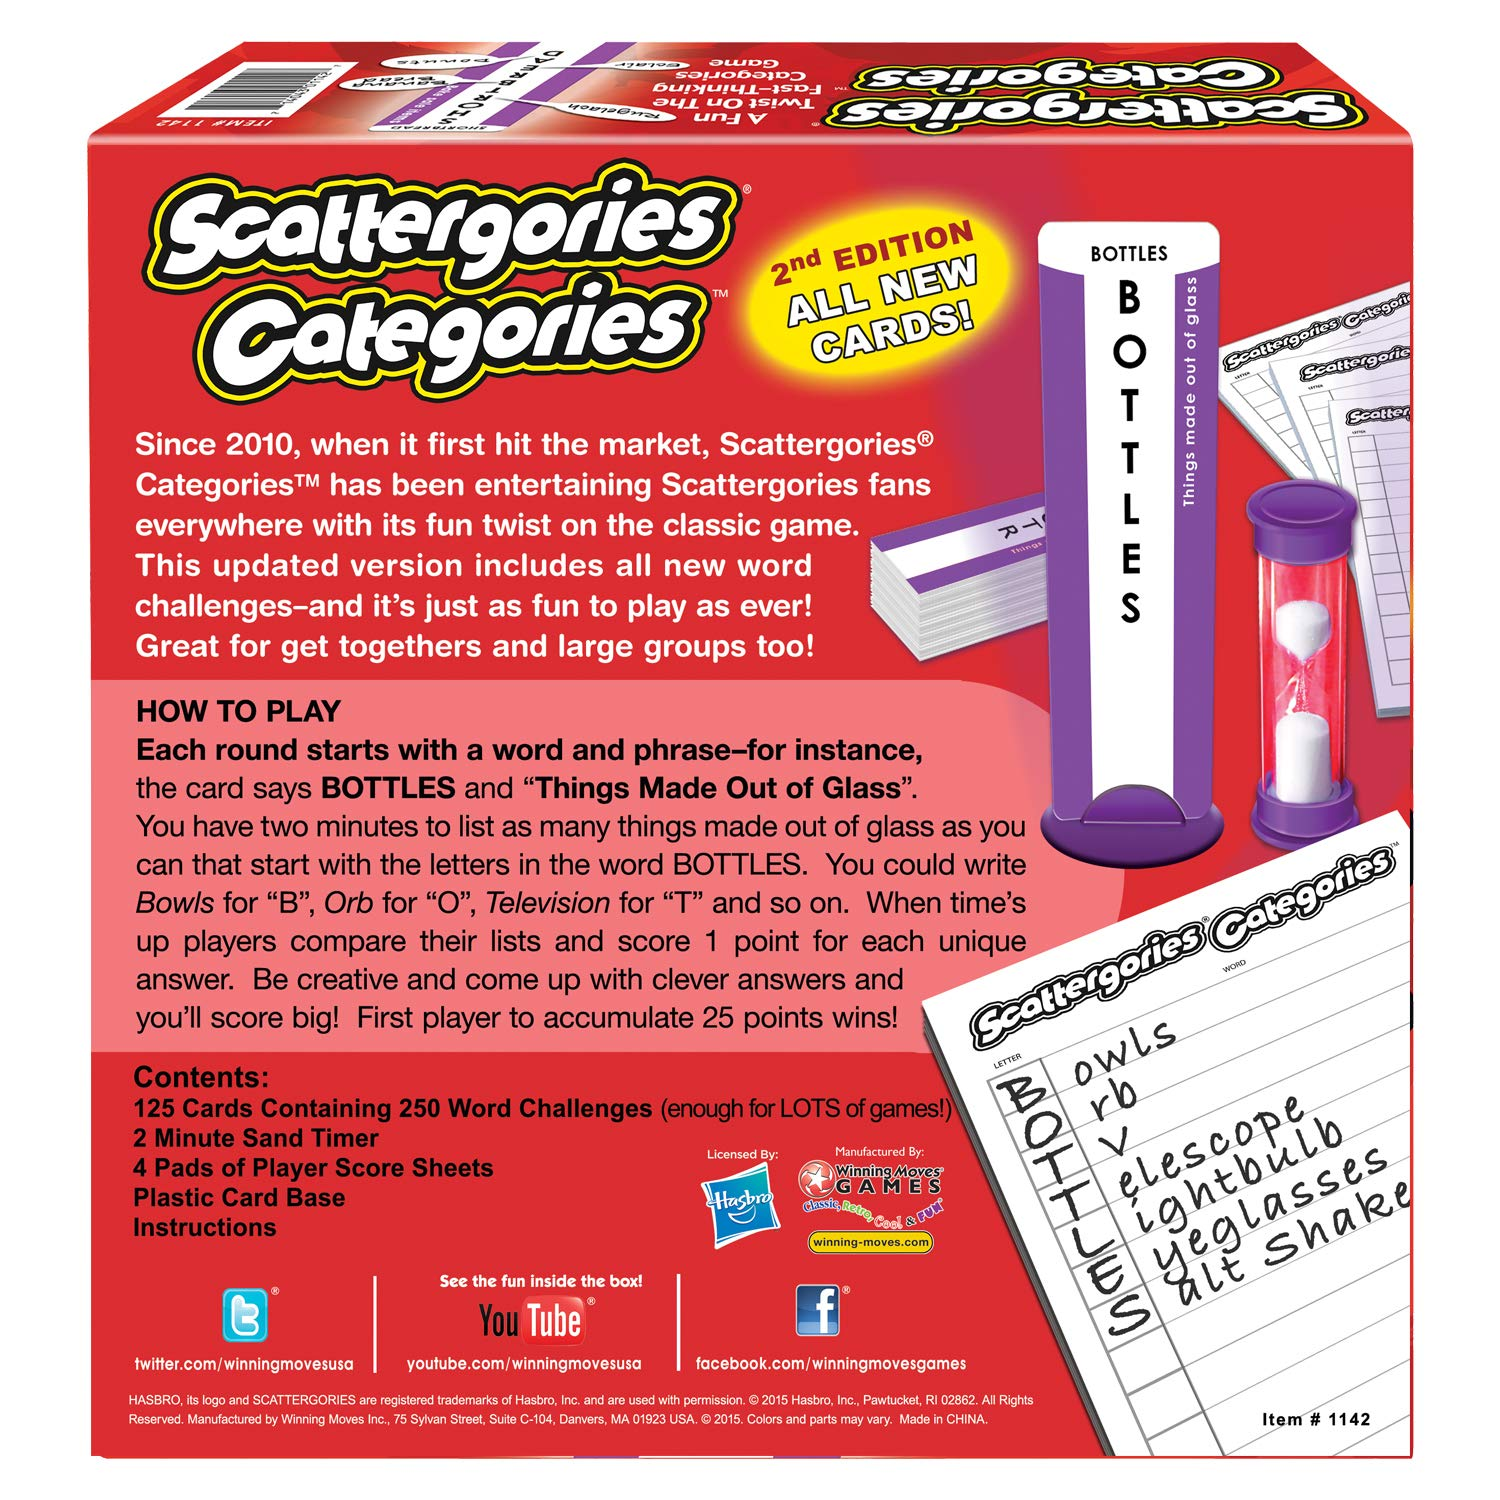 Amazon.com: Scattergories Categories - A Fun Twist on the Fast ...